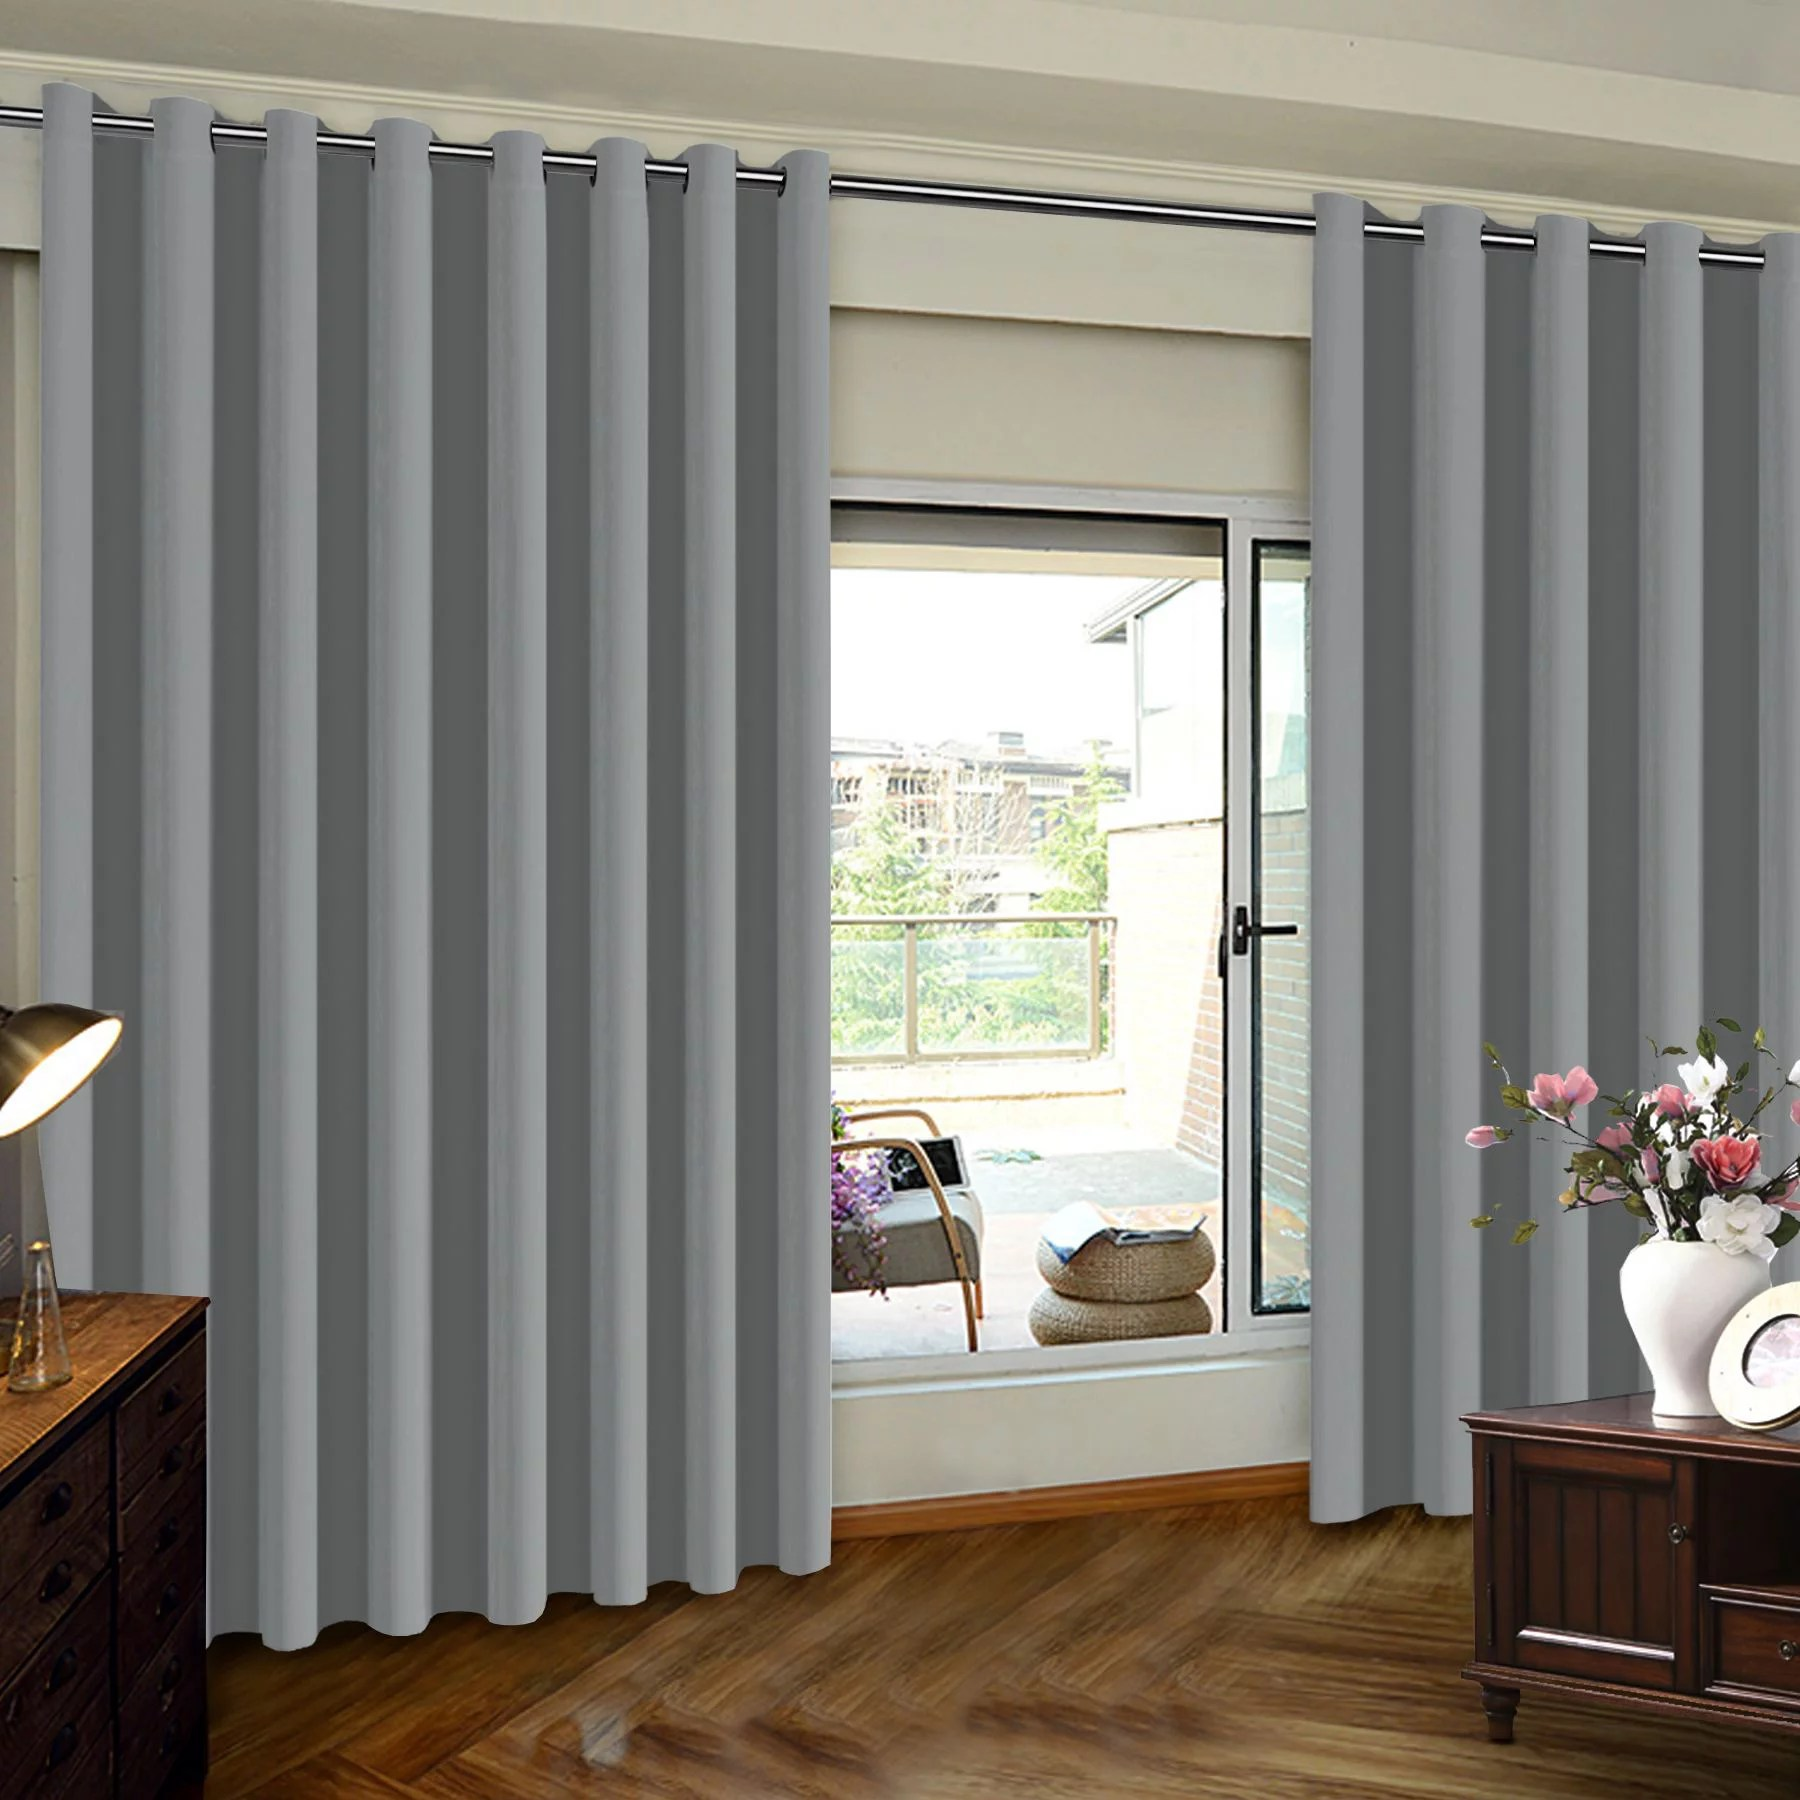 blackout wide sliding door curtains privacy room divider curtain thermal insulated wide drapes draperies for bedroom with grommet top dove gray